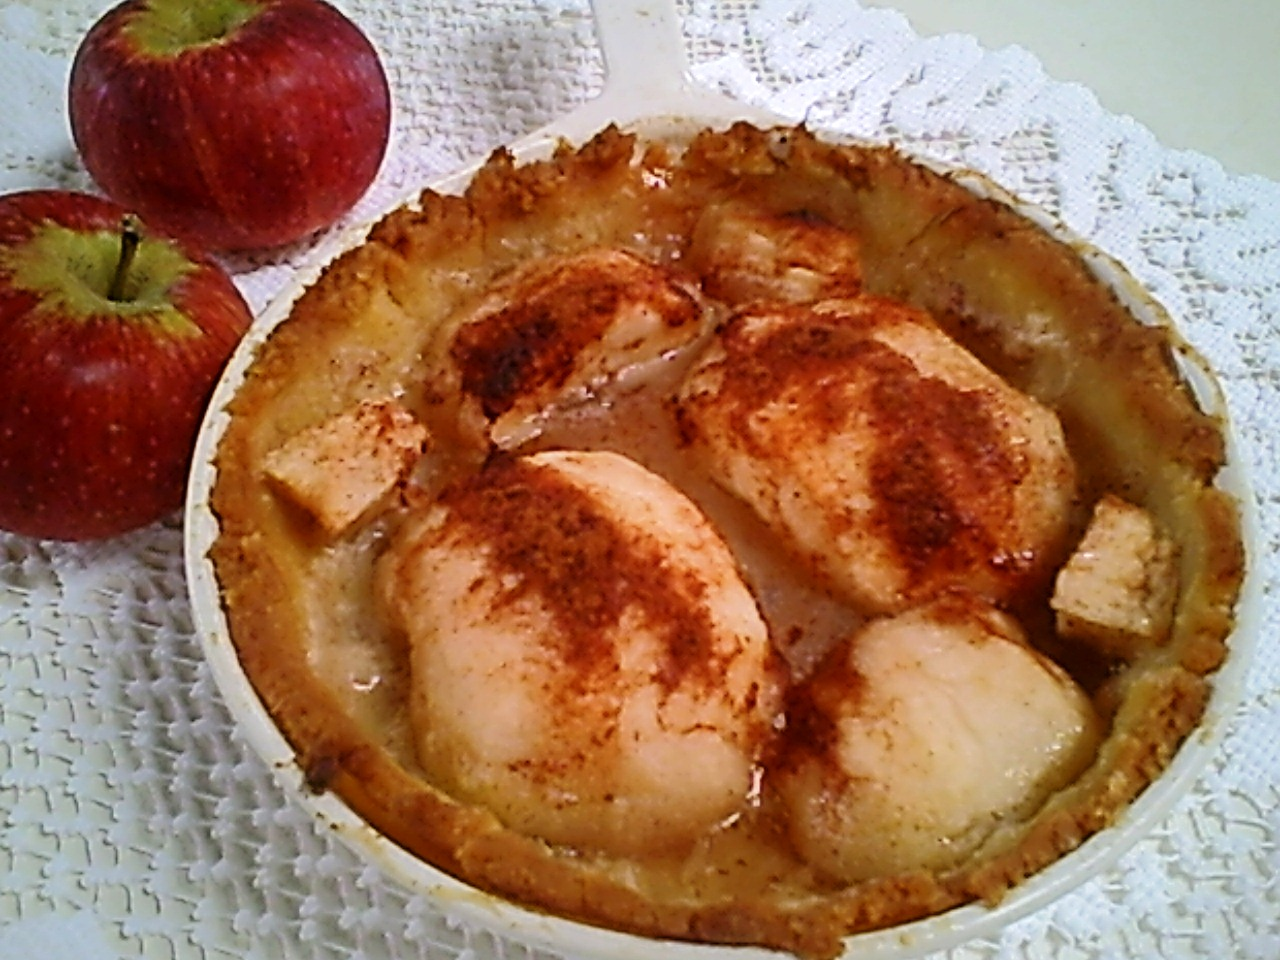 Pennsylvania Dutch Apple Tart with Gluten-Free Pie Crust